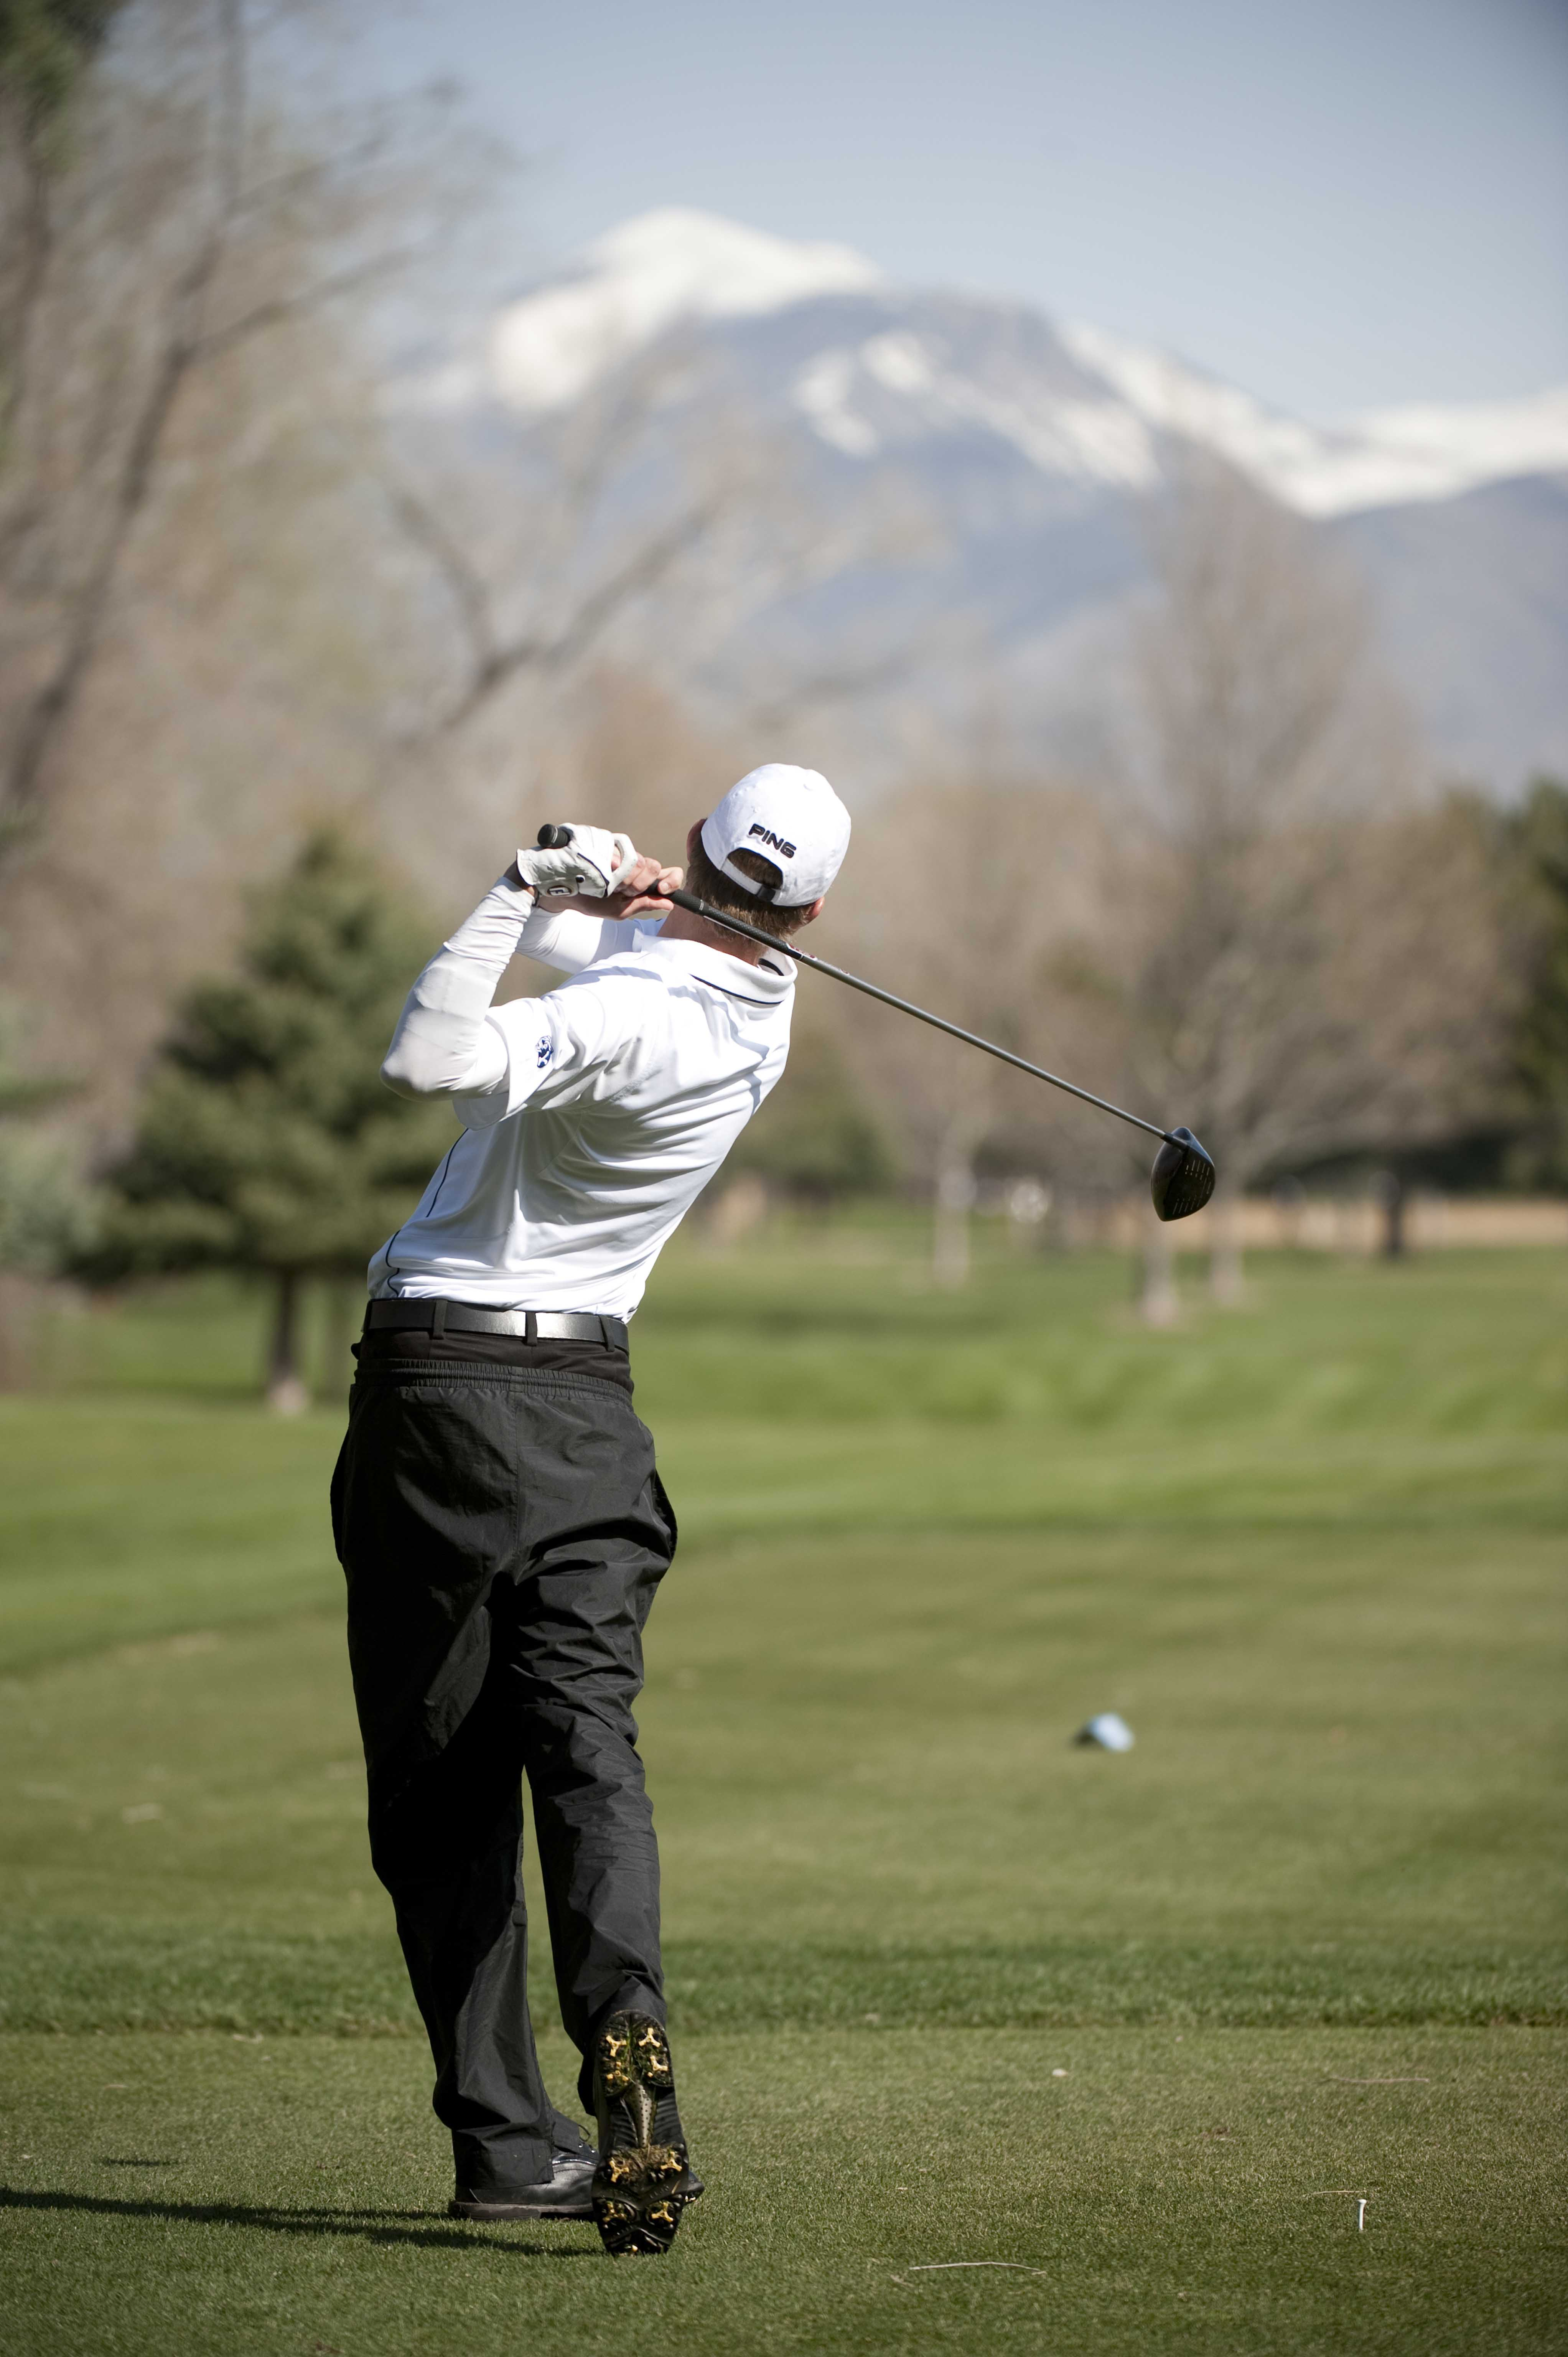 The Men's golf finished fifth in a past tournament Photo by Universe Photographer.